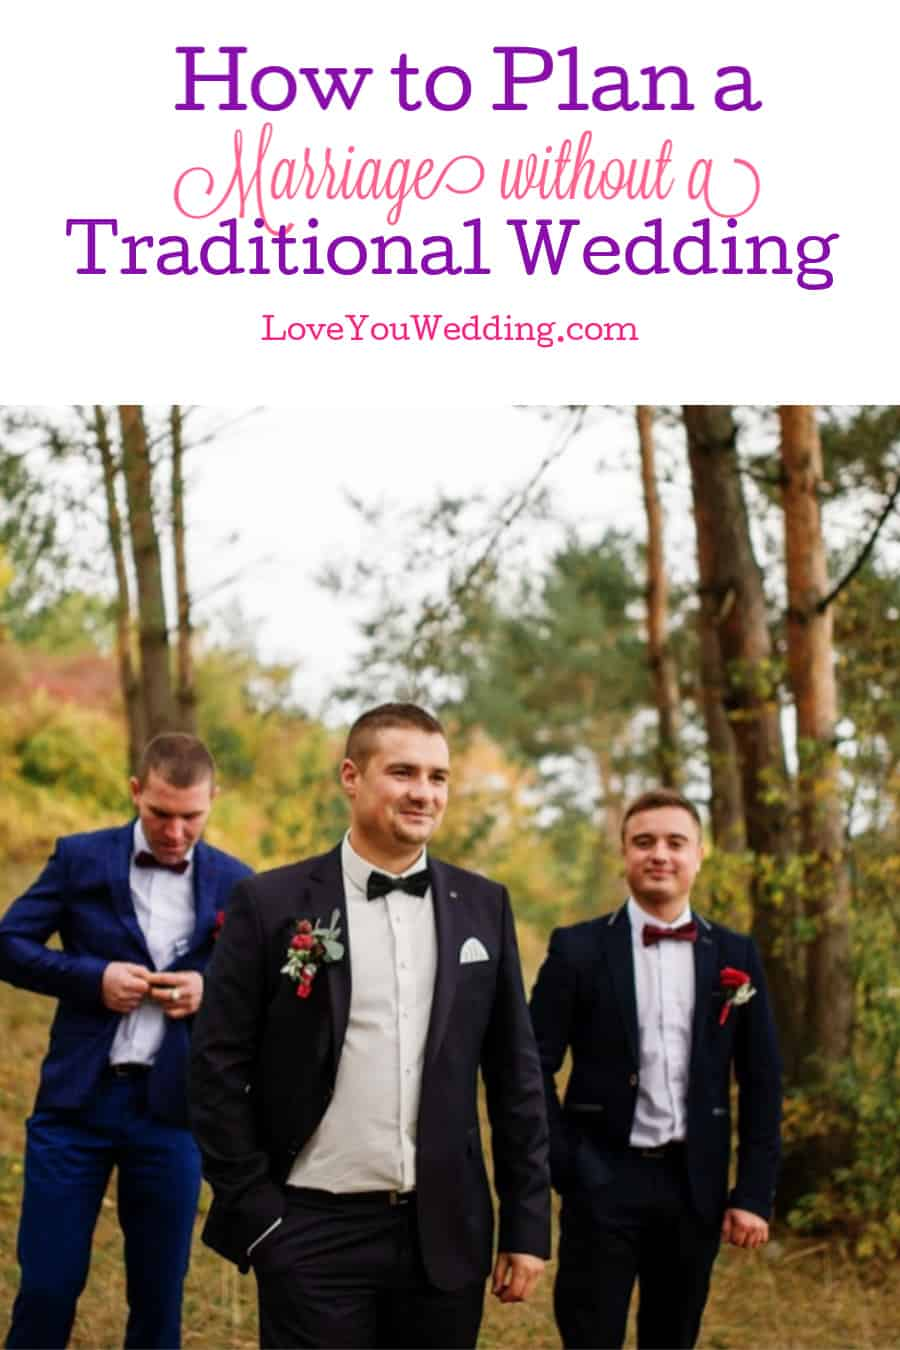 More and more couples are searching for marriage ideas without a wedding. If tradition just isn't your thing, read on for some great ideas!